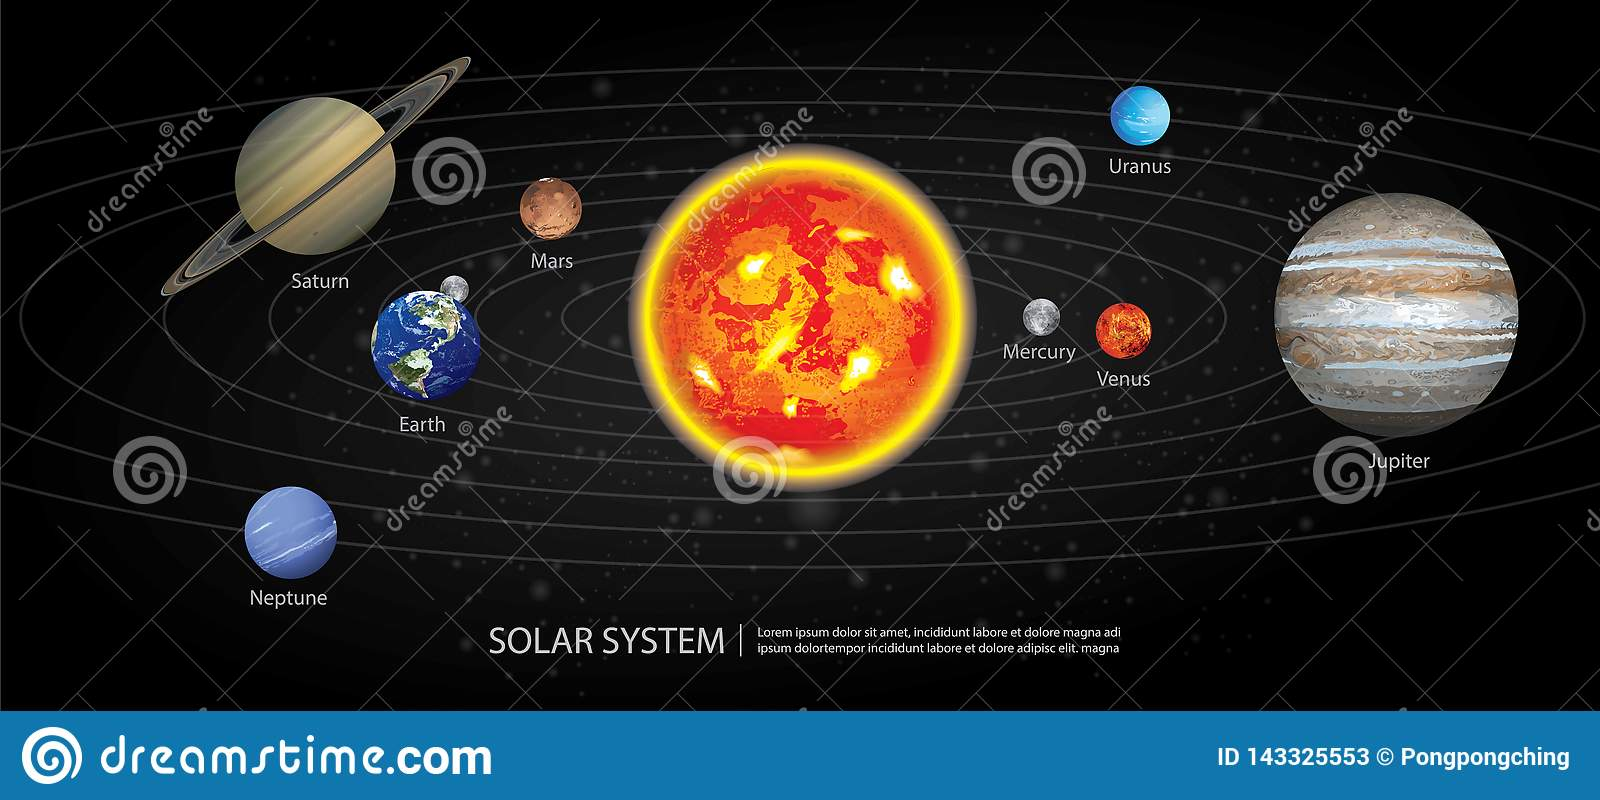 Solar System of our Planets